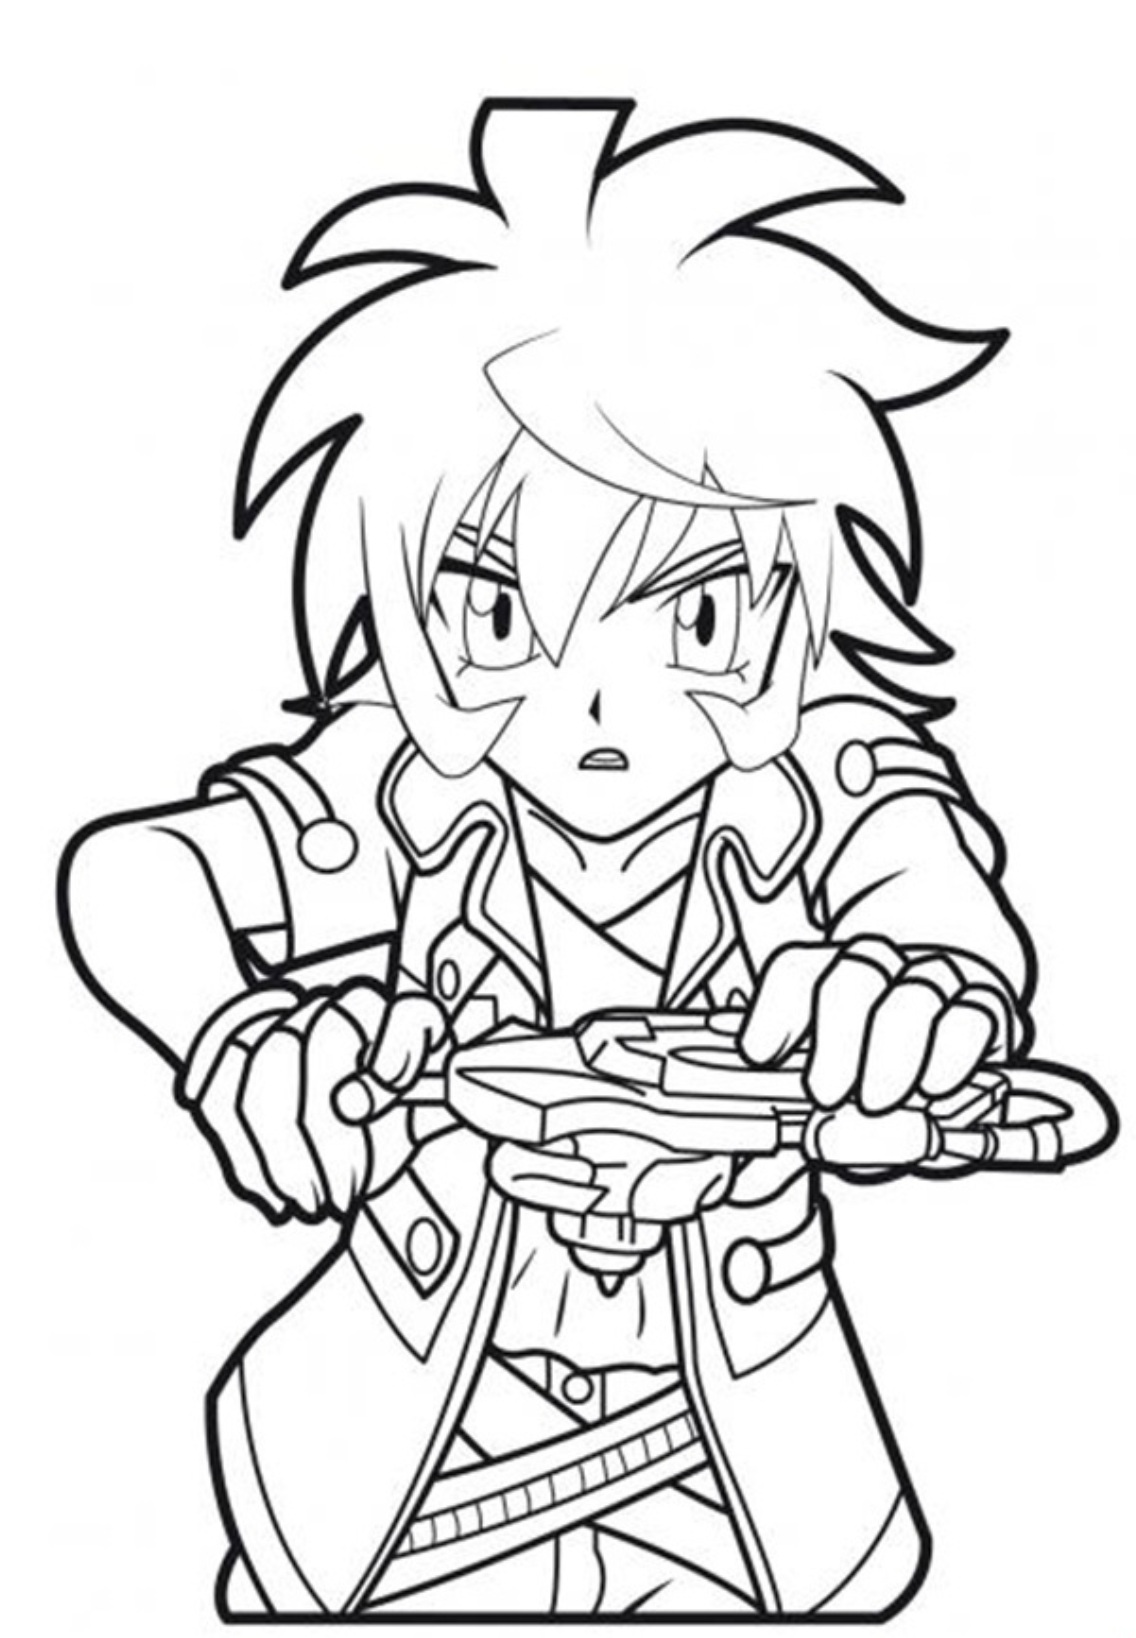 Beyblade coloring pages to download and print for free | printable colouring pages